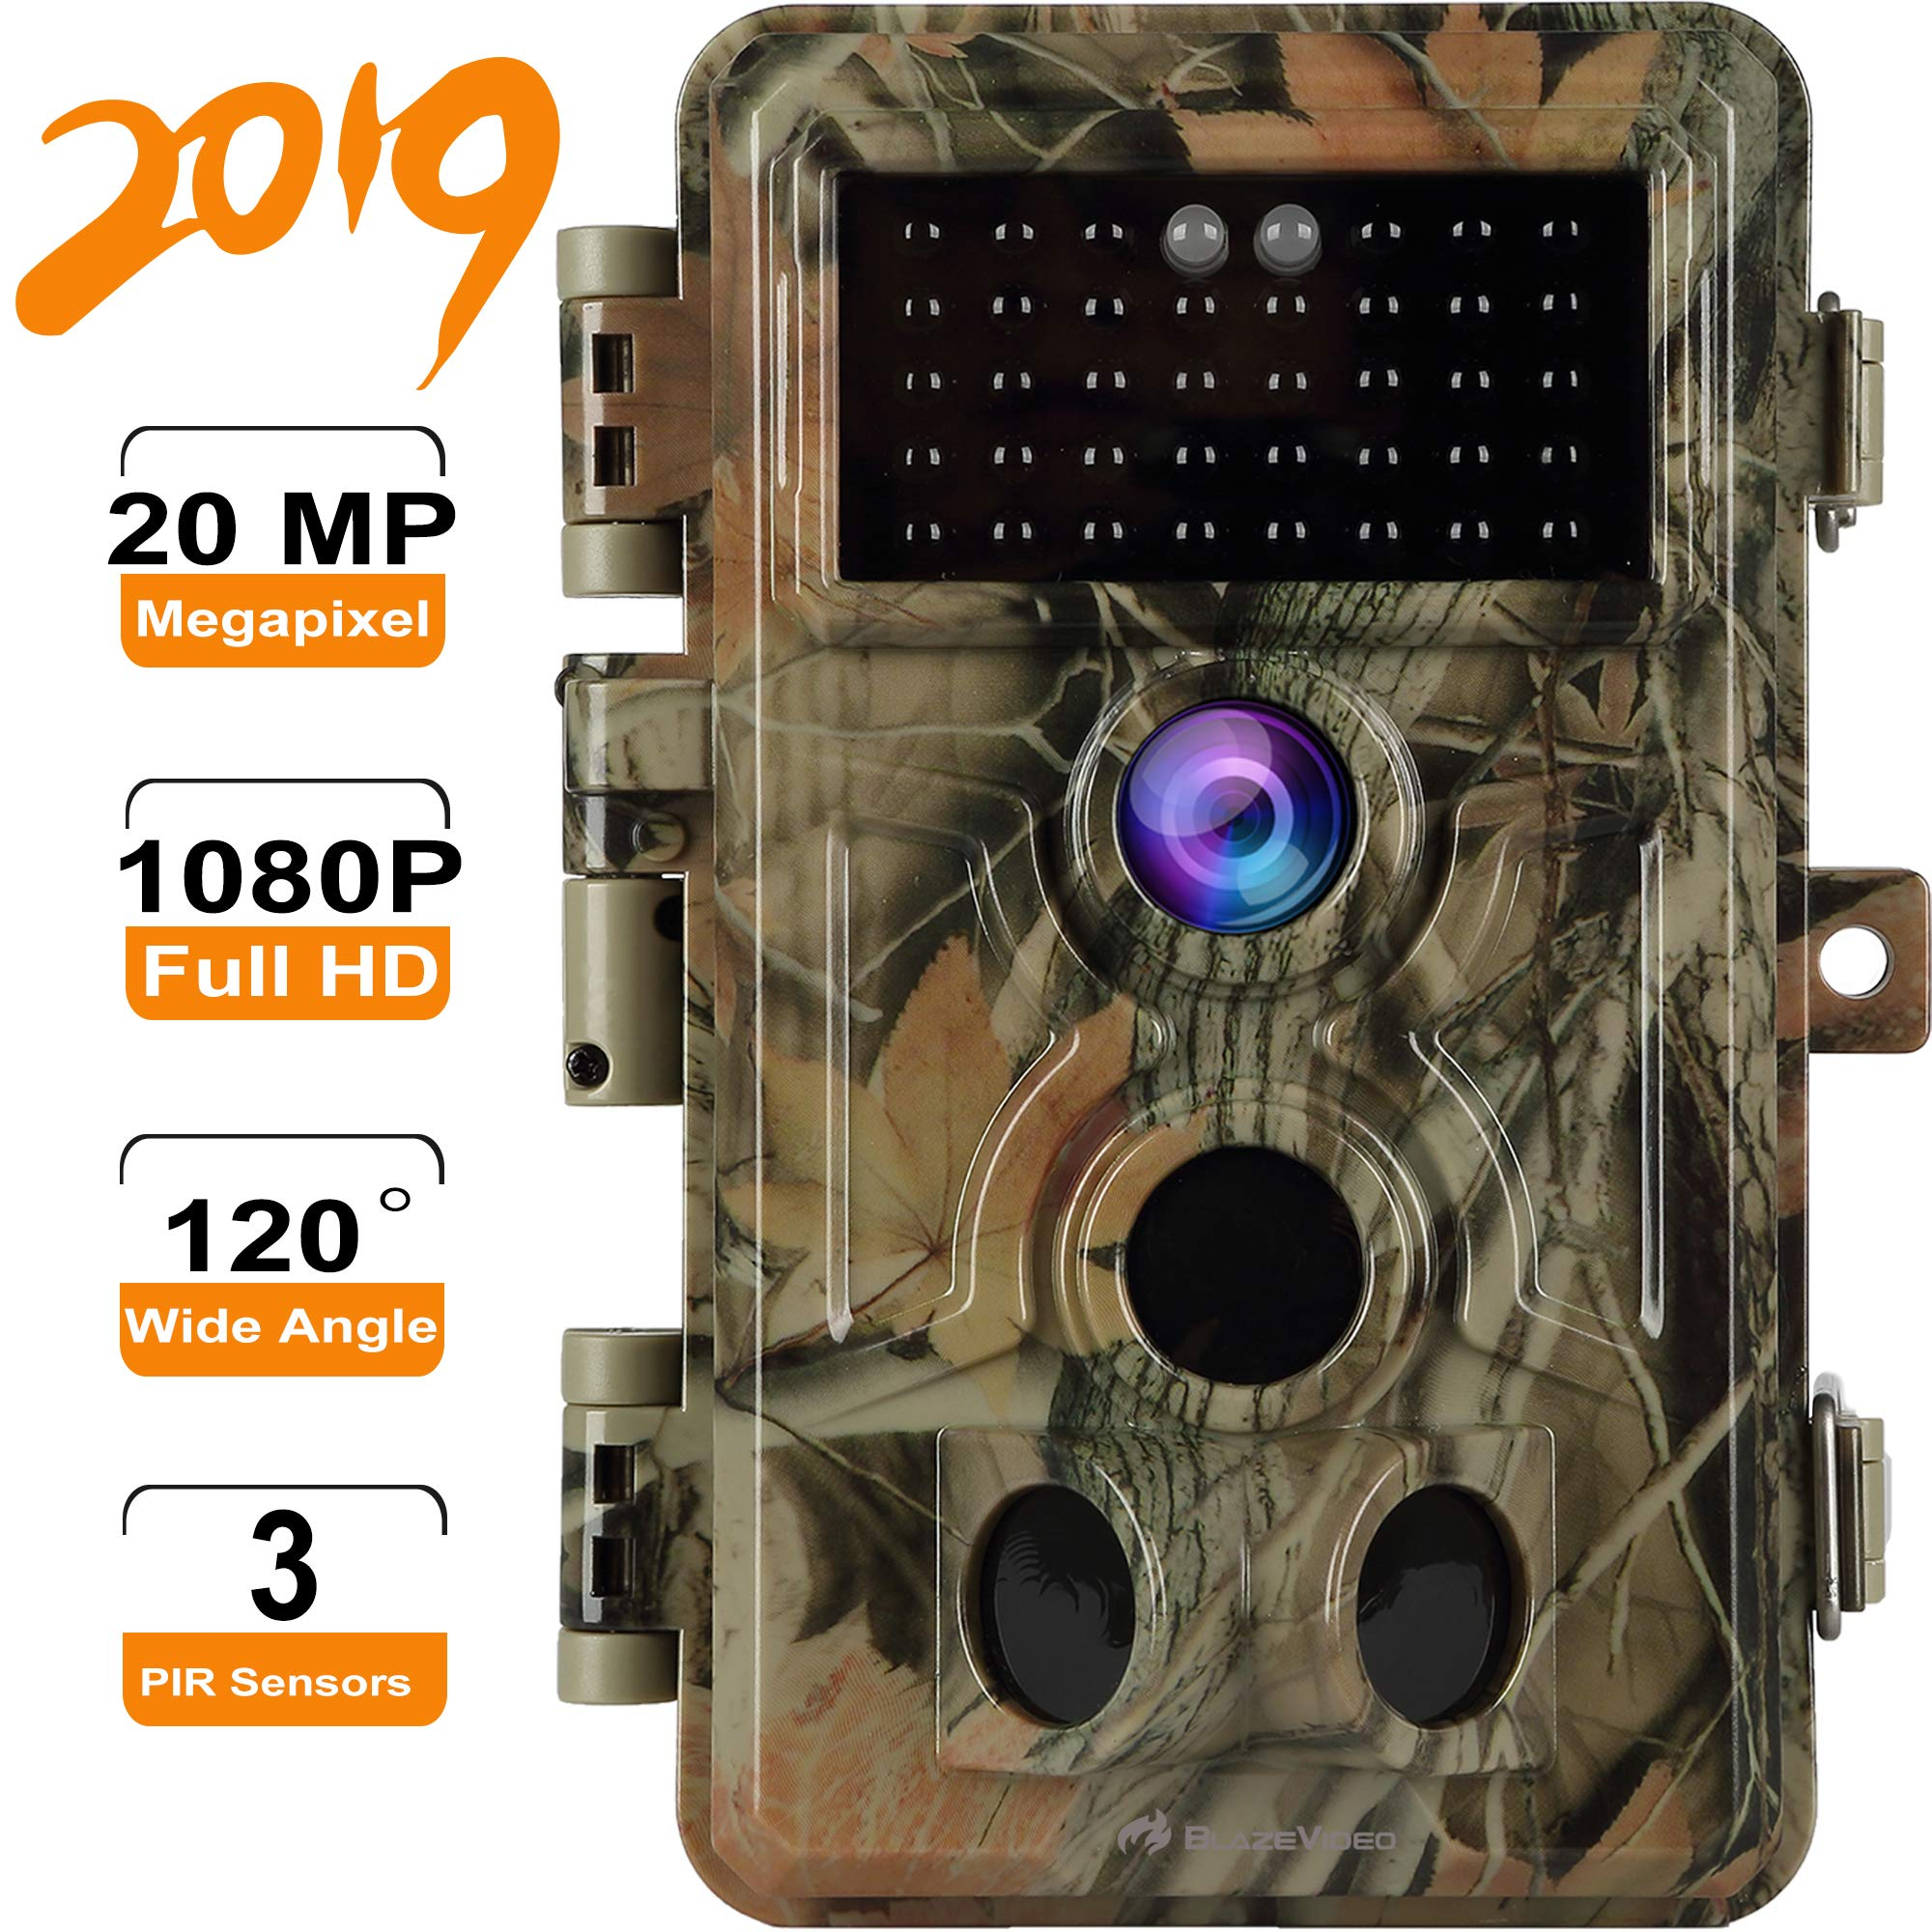 Game & Trail Camera HD 20MP Picture 1920x1080P Audio & Video No Glow with Night Vision, Deer Hunting Camera 120° 3-PIR Motion Activated & 0.2S Trigger Speed, IP66 Waterproof, Photo & Video Model by BlazeVideo